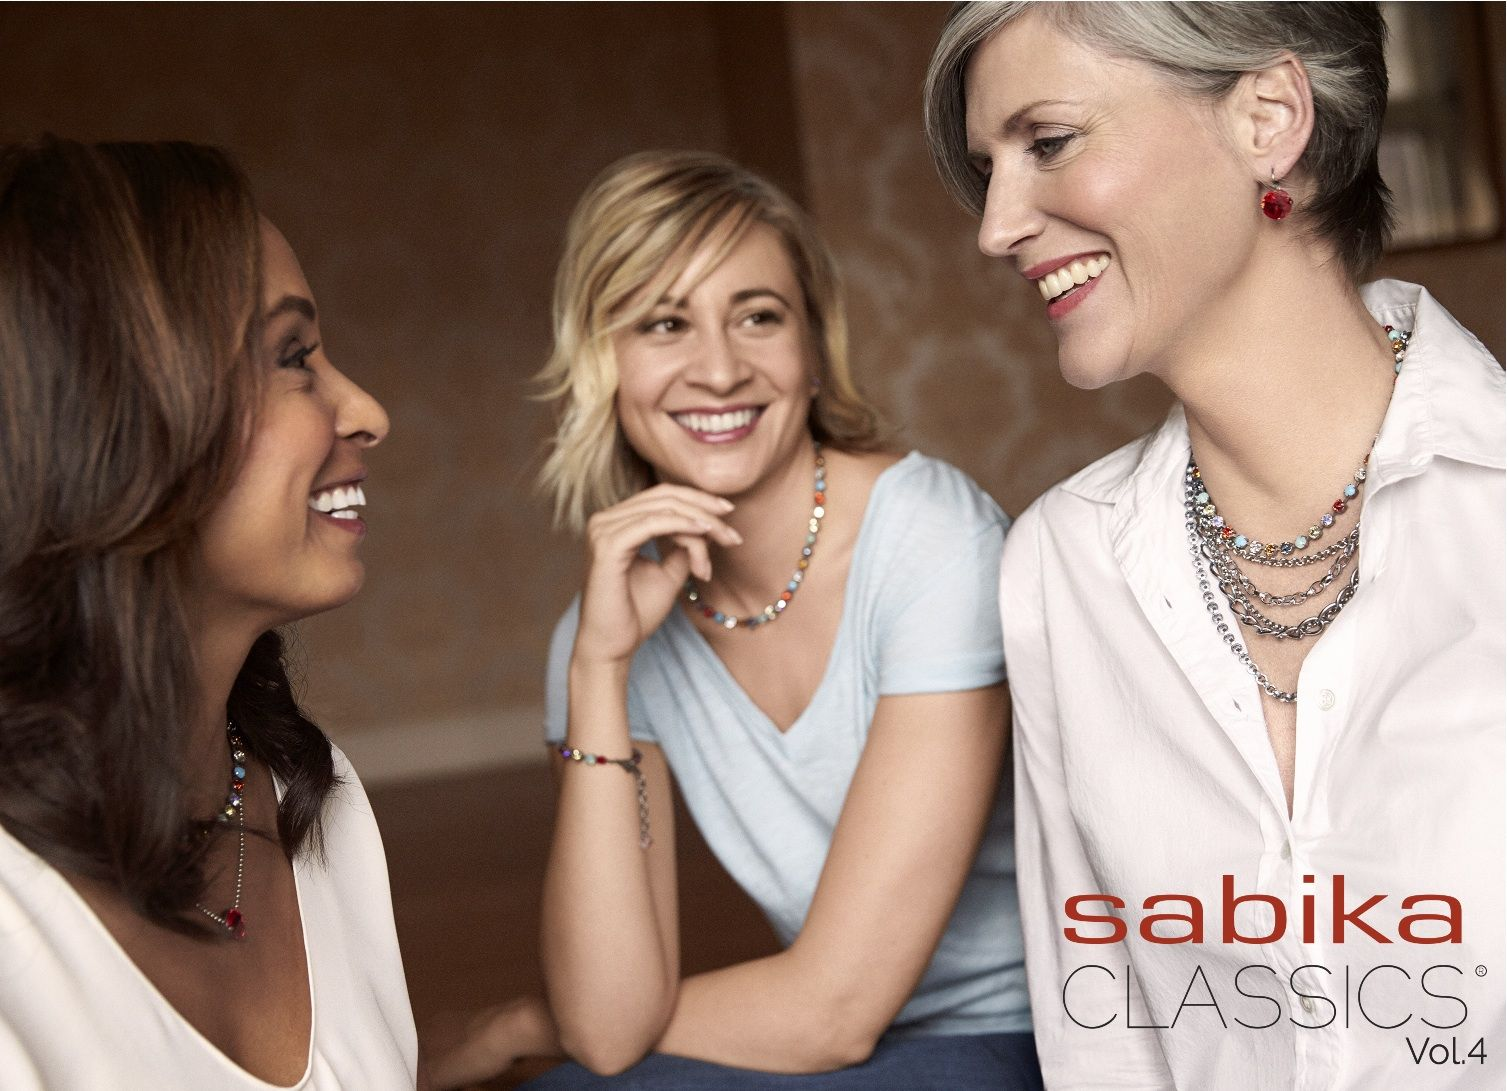 Sabika Classics Vol. 4: Story 1 Joyful, The bursts of red, turquoise and yellows add an element that is pure joy